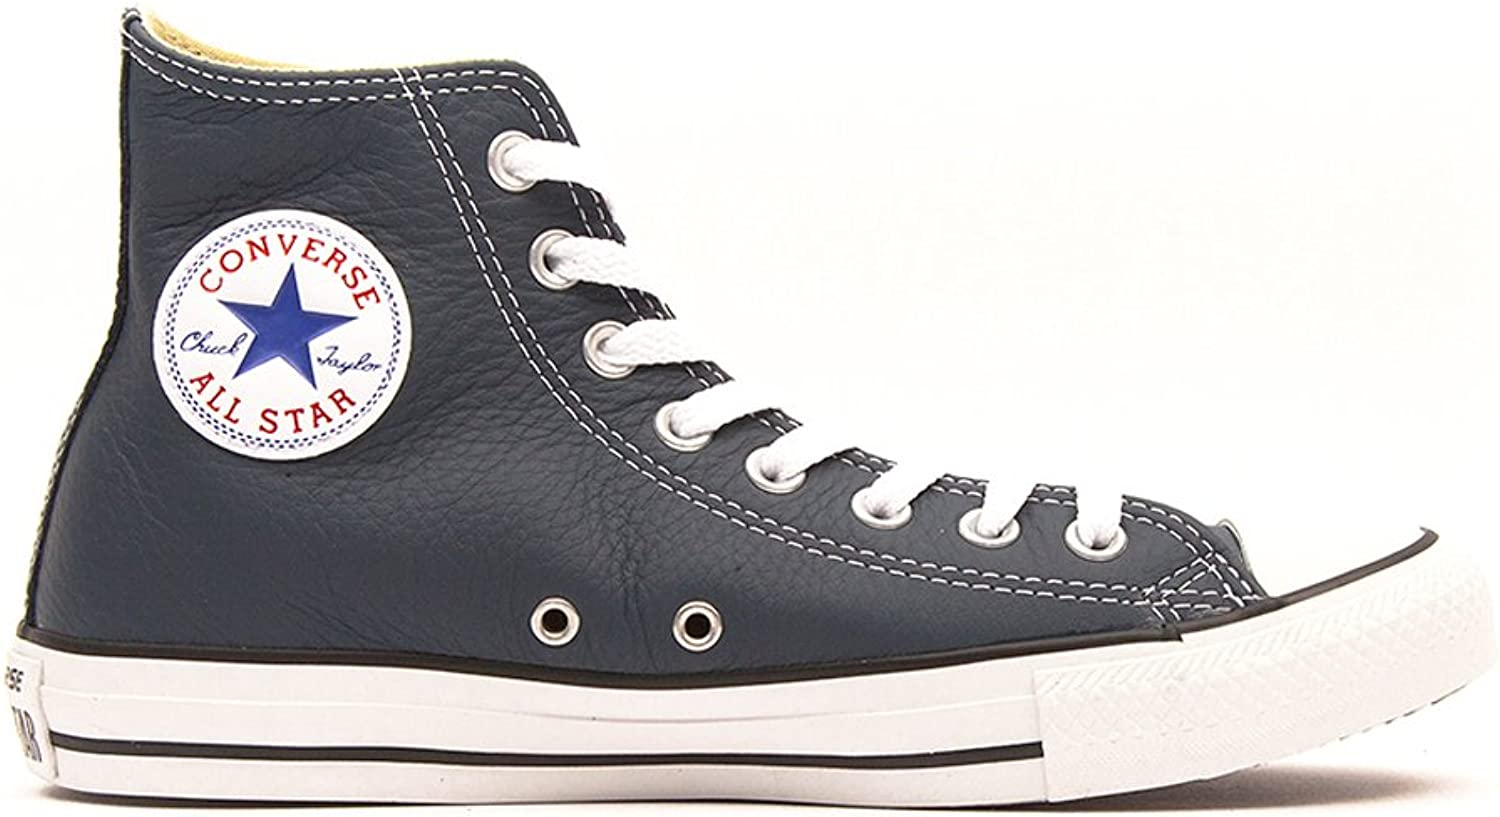 Converse Chuck Taylor All Star Leather Hi shoes, 5 D(M) US Mens   7 B(M) US Womens, Moonlight